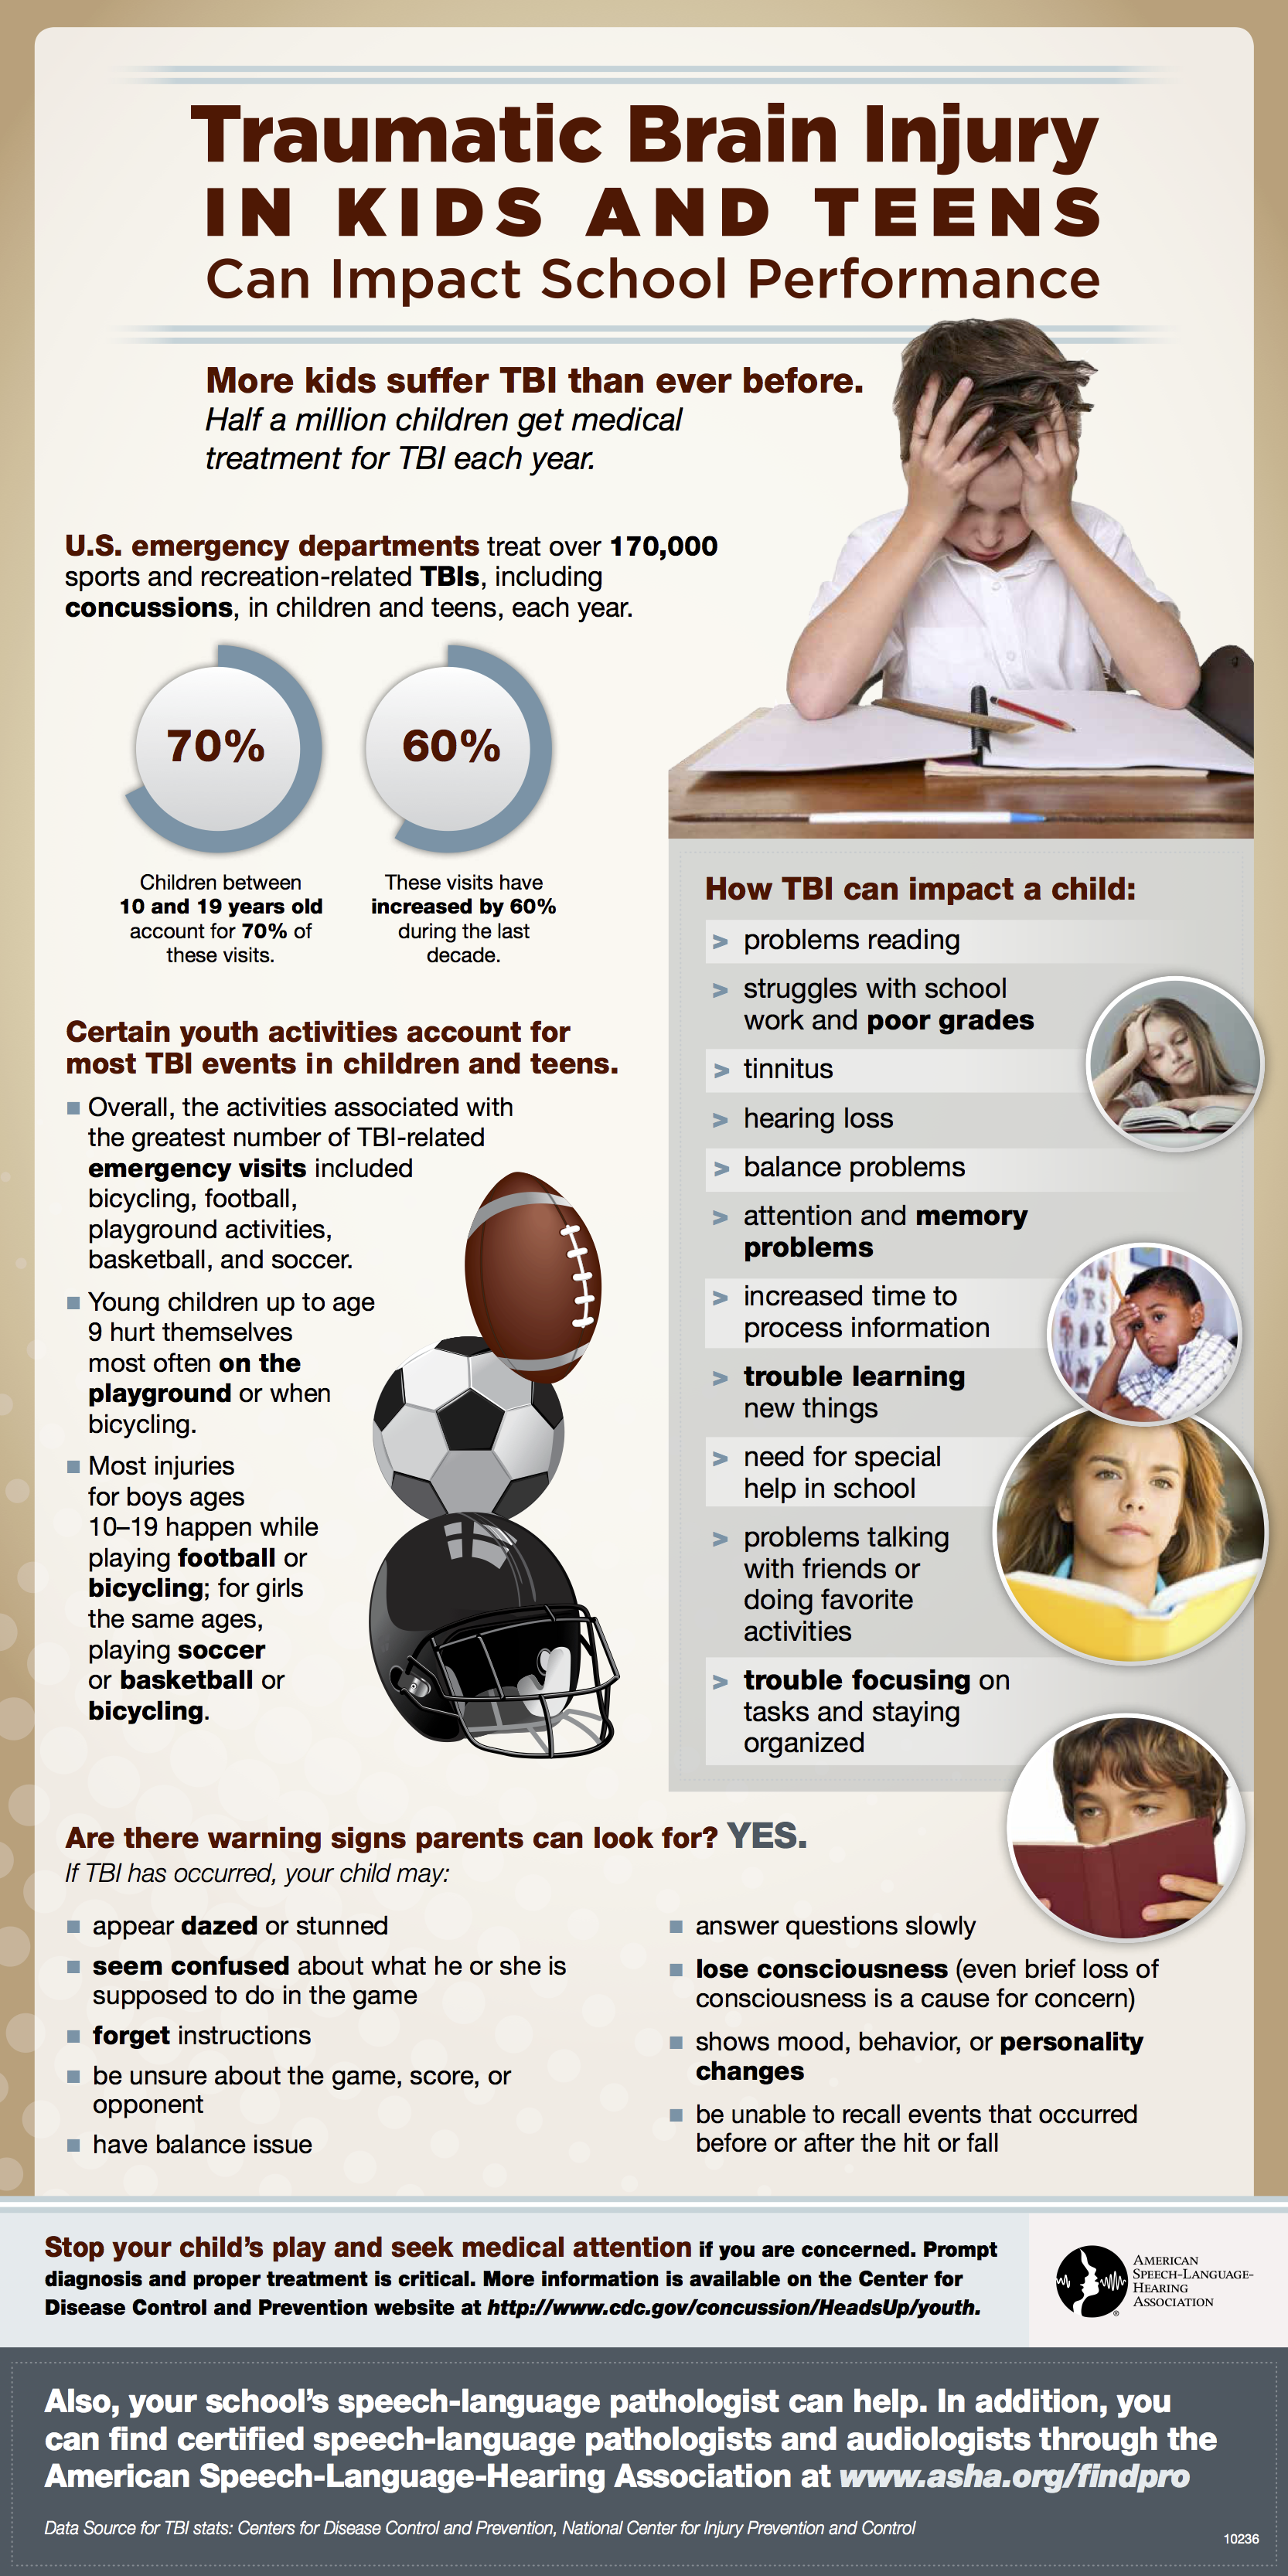 Traumatic Brain Injury for School Sports